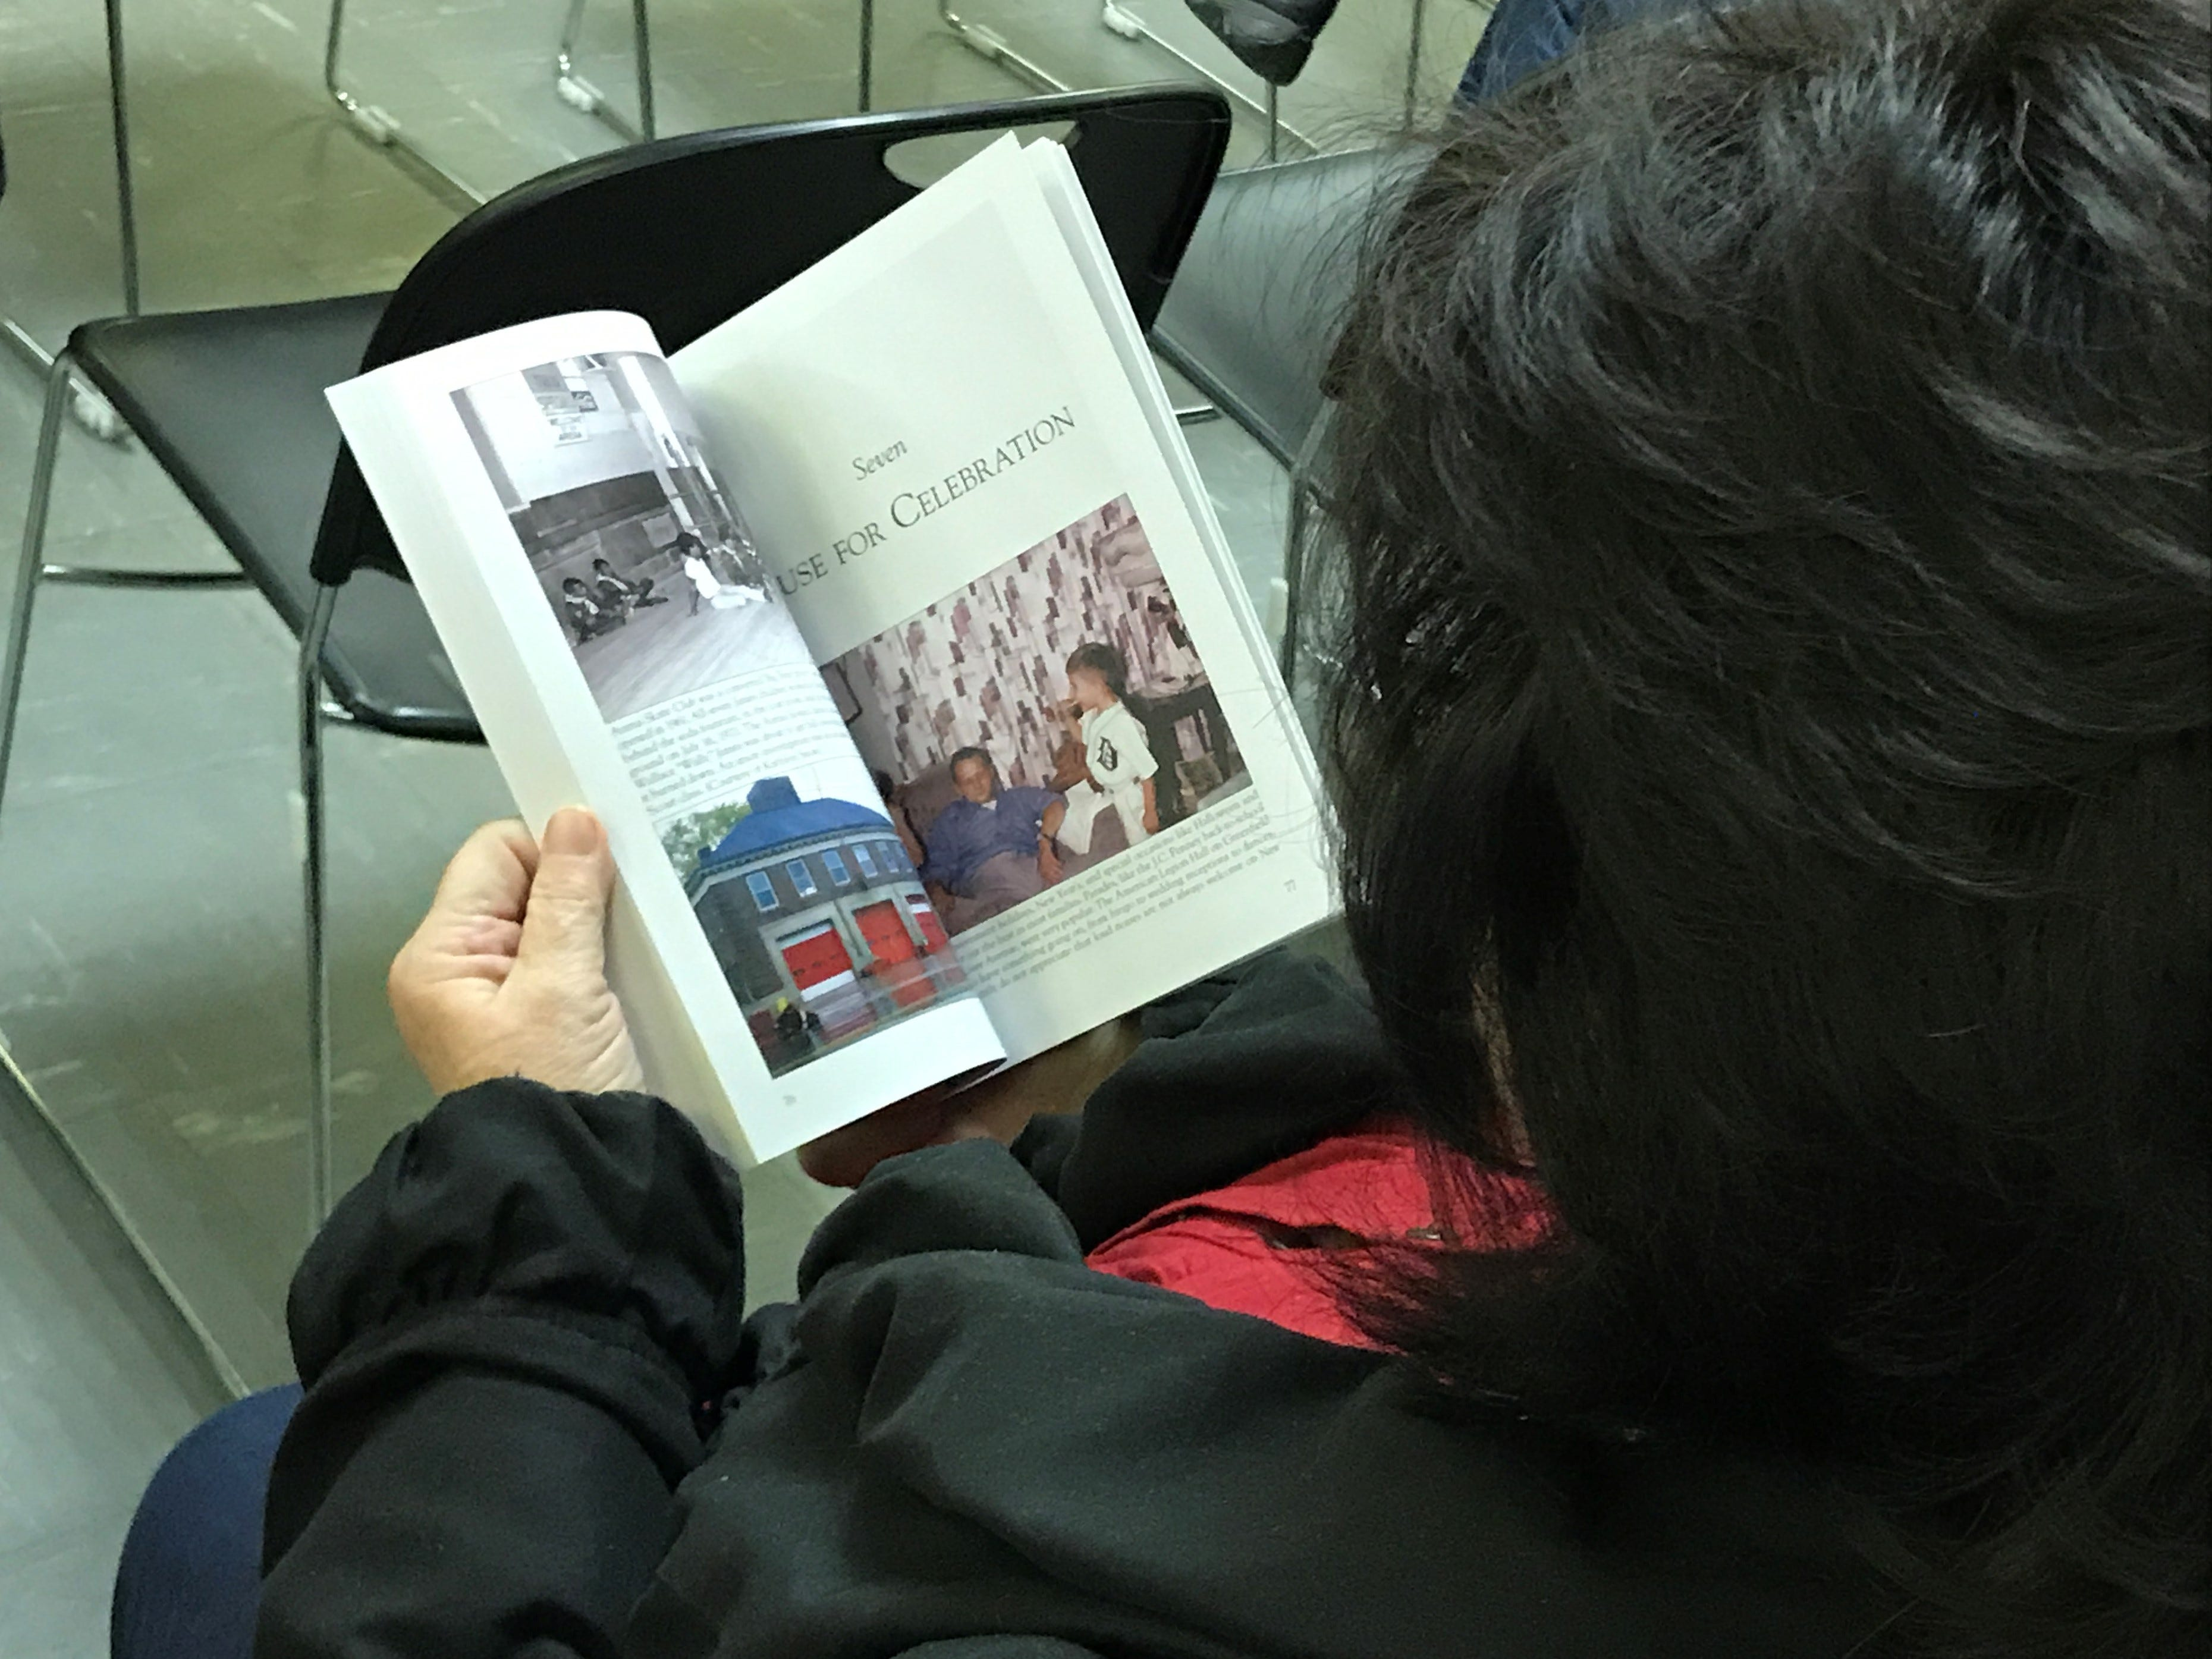 While Joseph McCauley discussed his book, a member of the audience flipped through its pages.